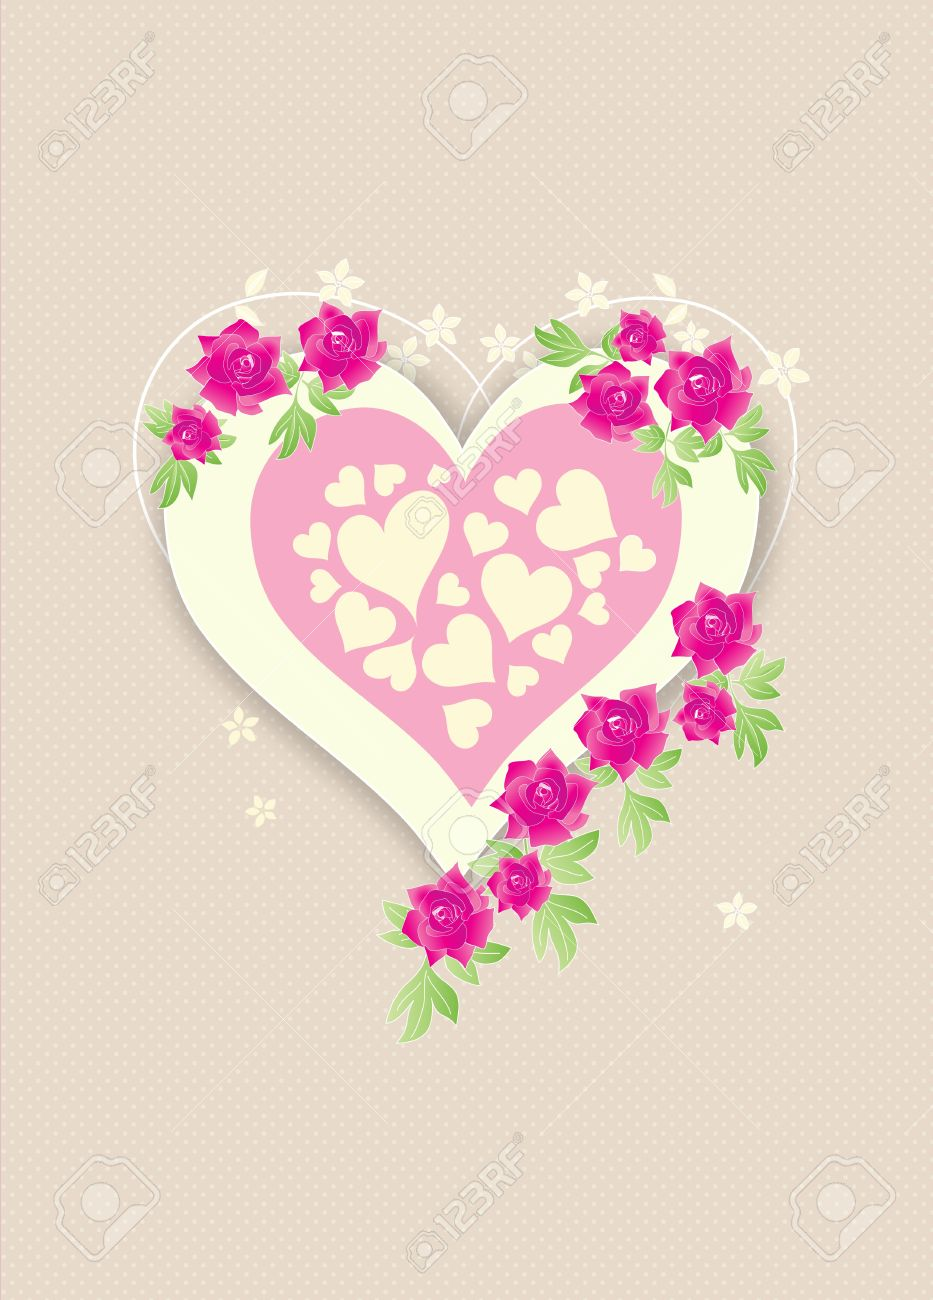 Beautiful retro love heart with pink roses on beige polka dots background Stock Photo - 11451984